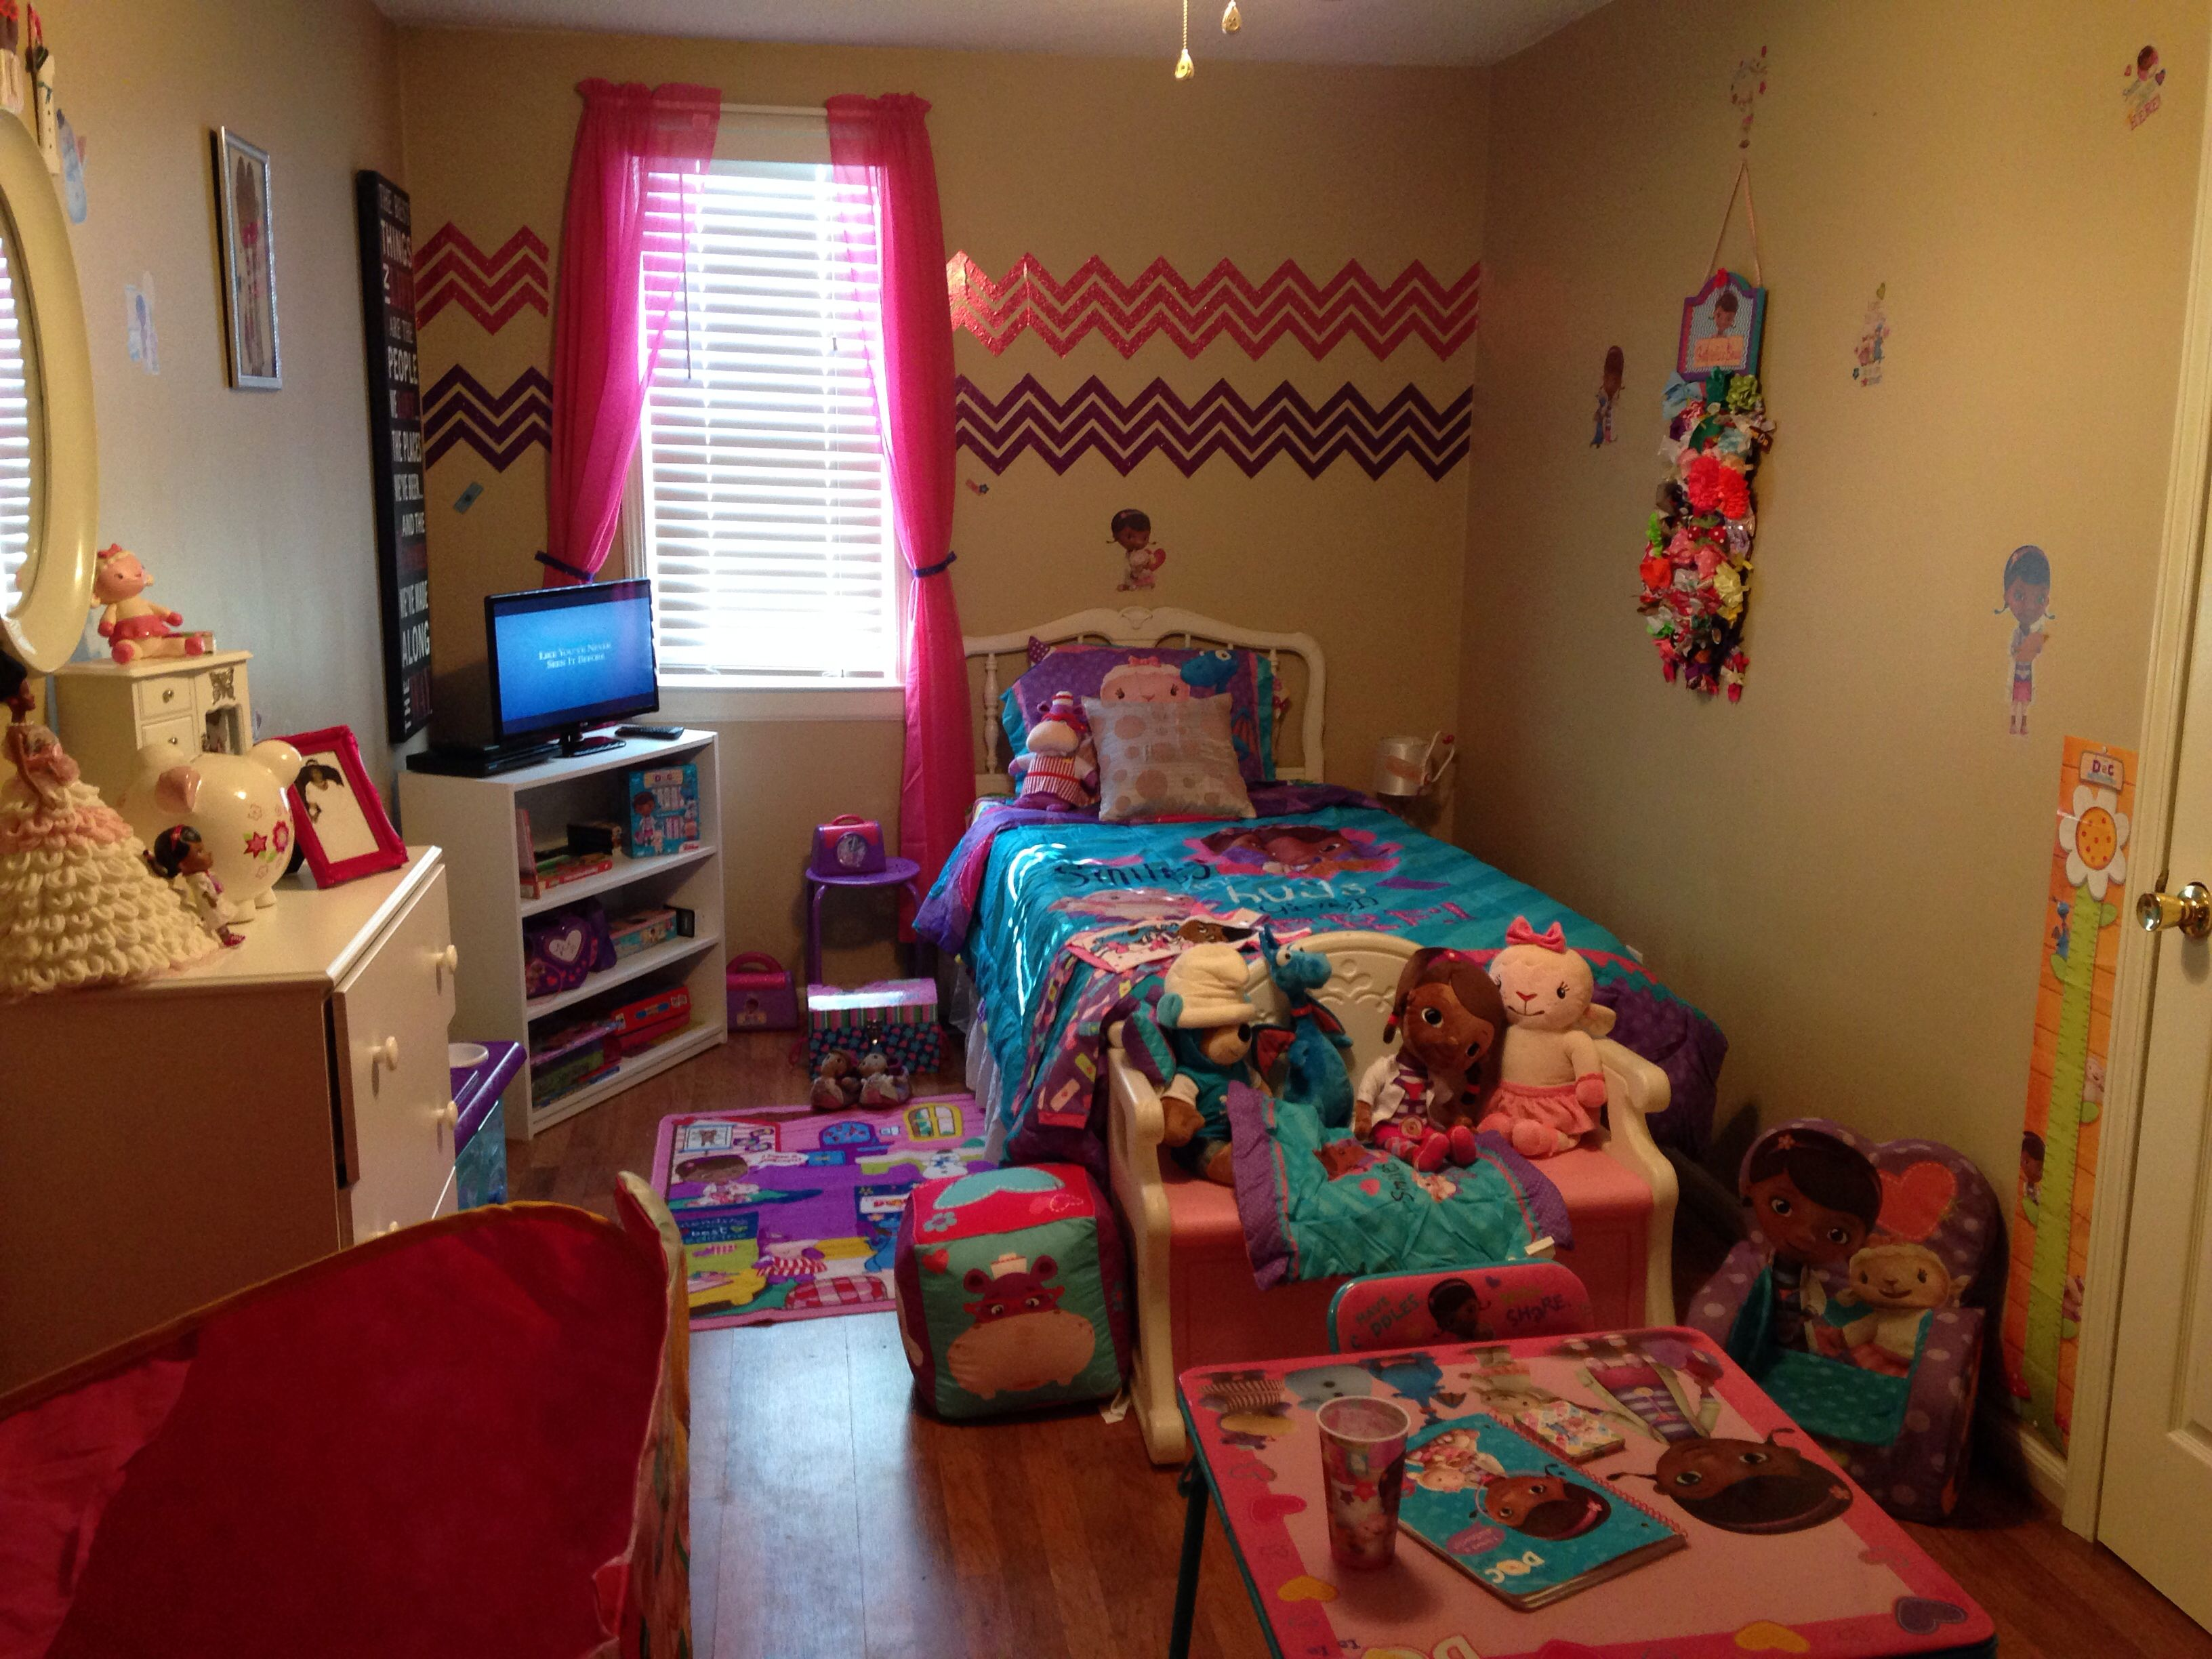 Doc Mcstuffins room & Doc Mcstuffins room | Doc Mcstuffins Bedroom | Game room decor Room ...